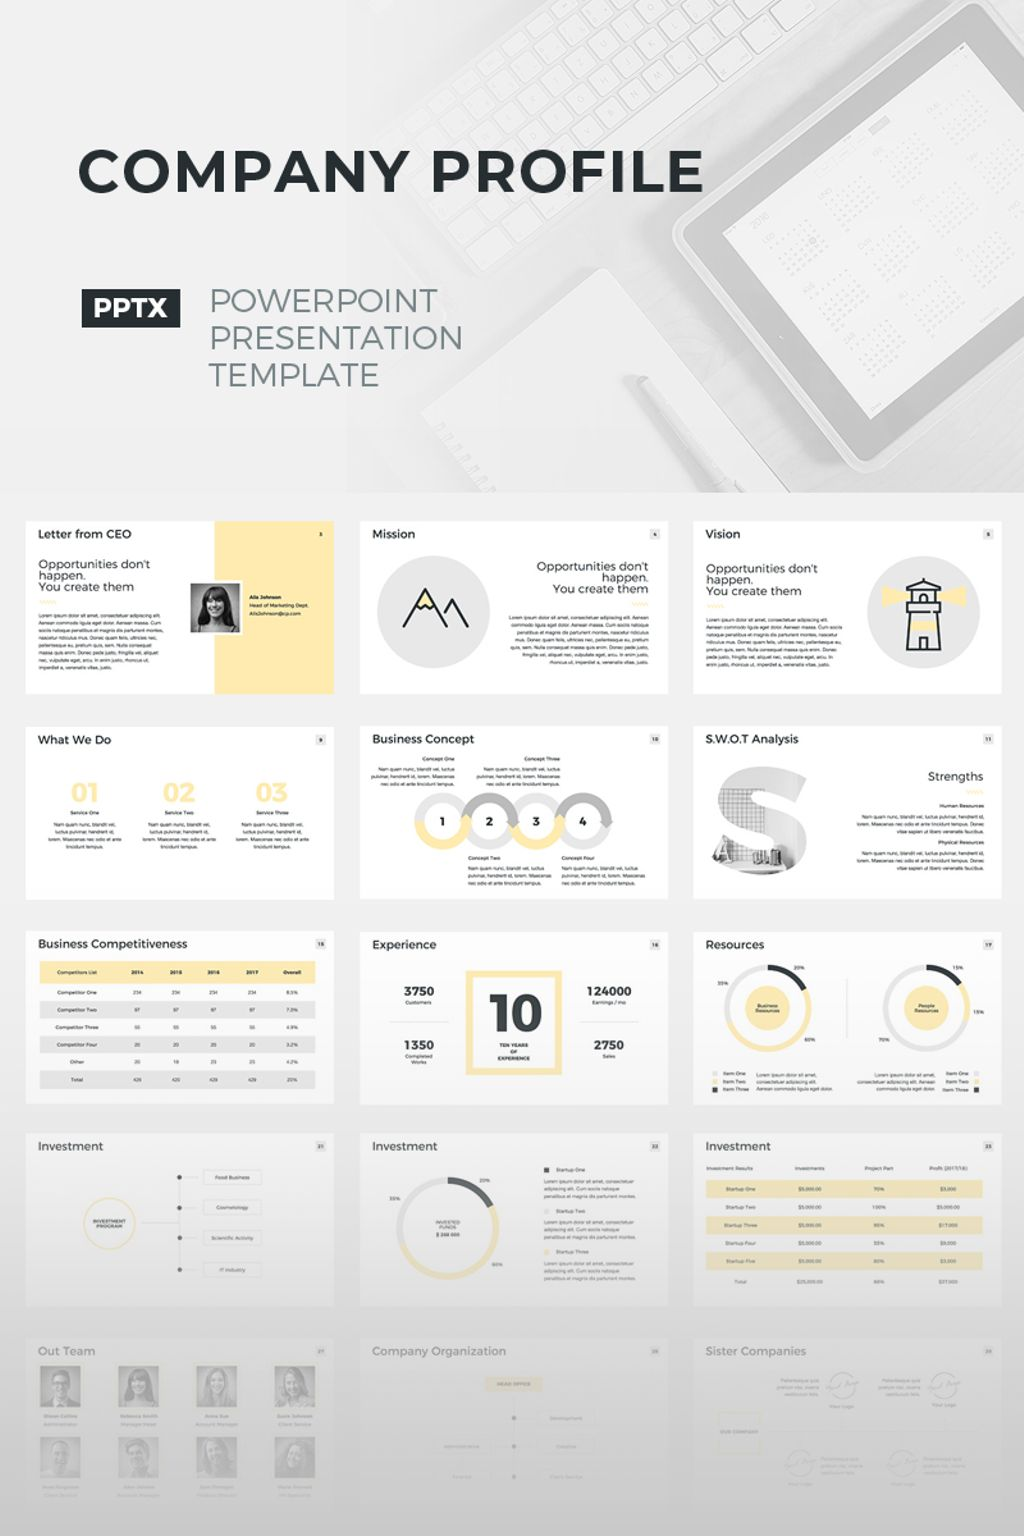 Company profile powerpoint template 67157 company profile powerpoint template big screenshot toneelgroepblik Image collections